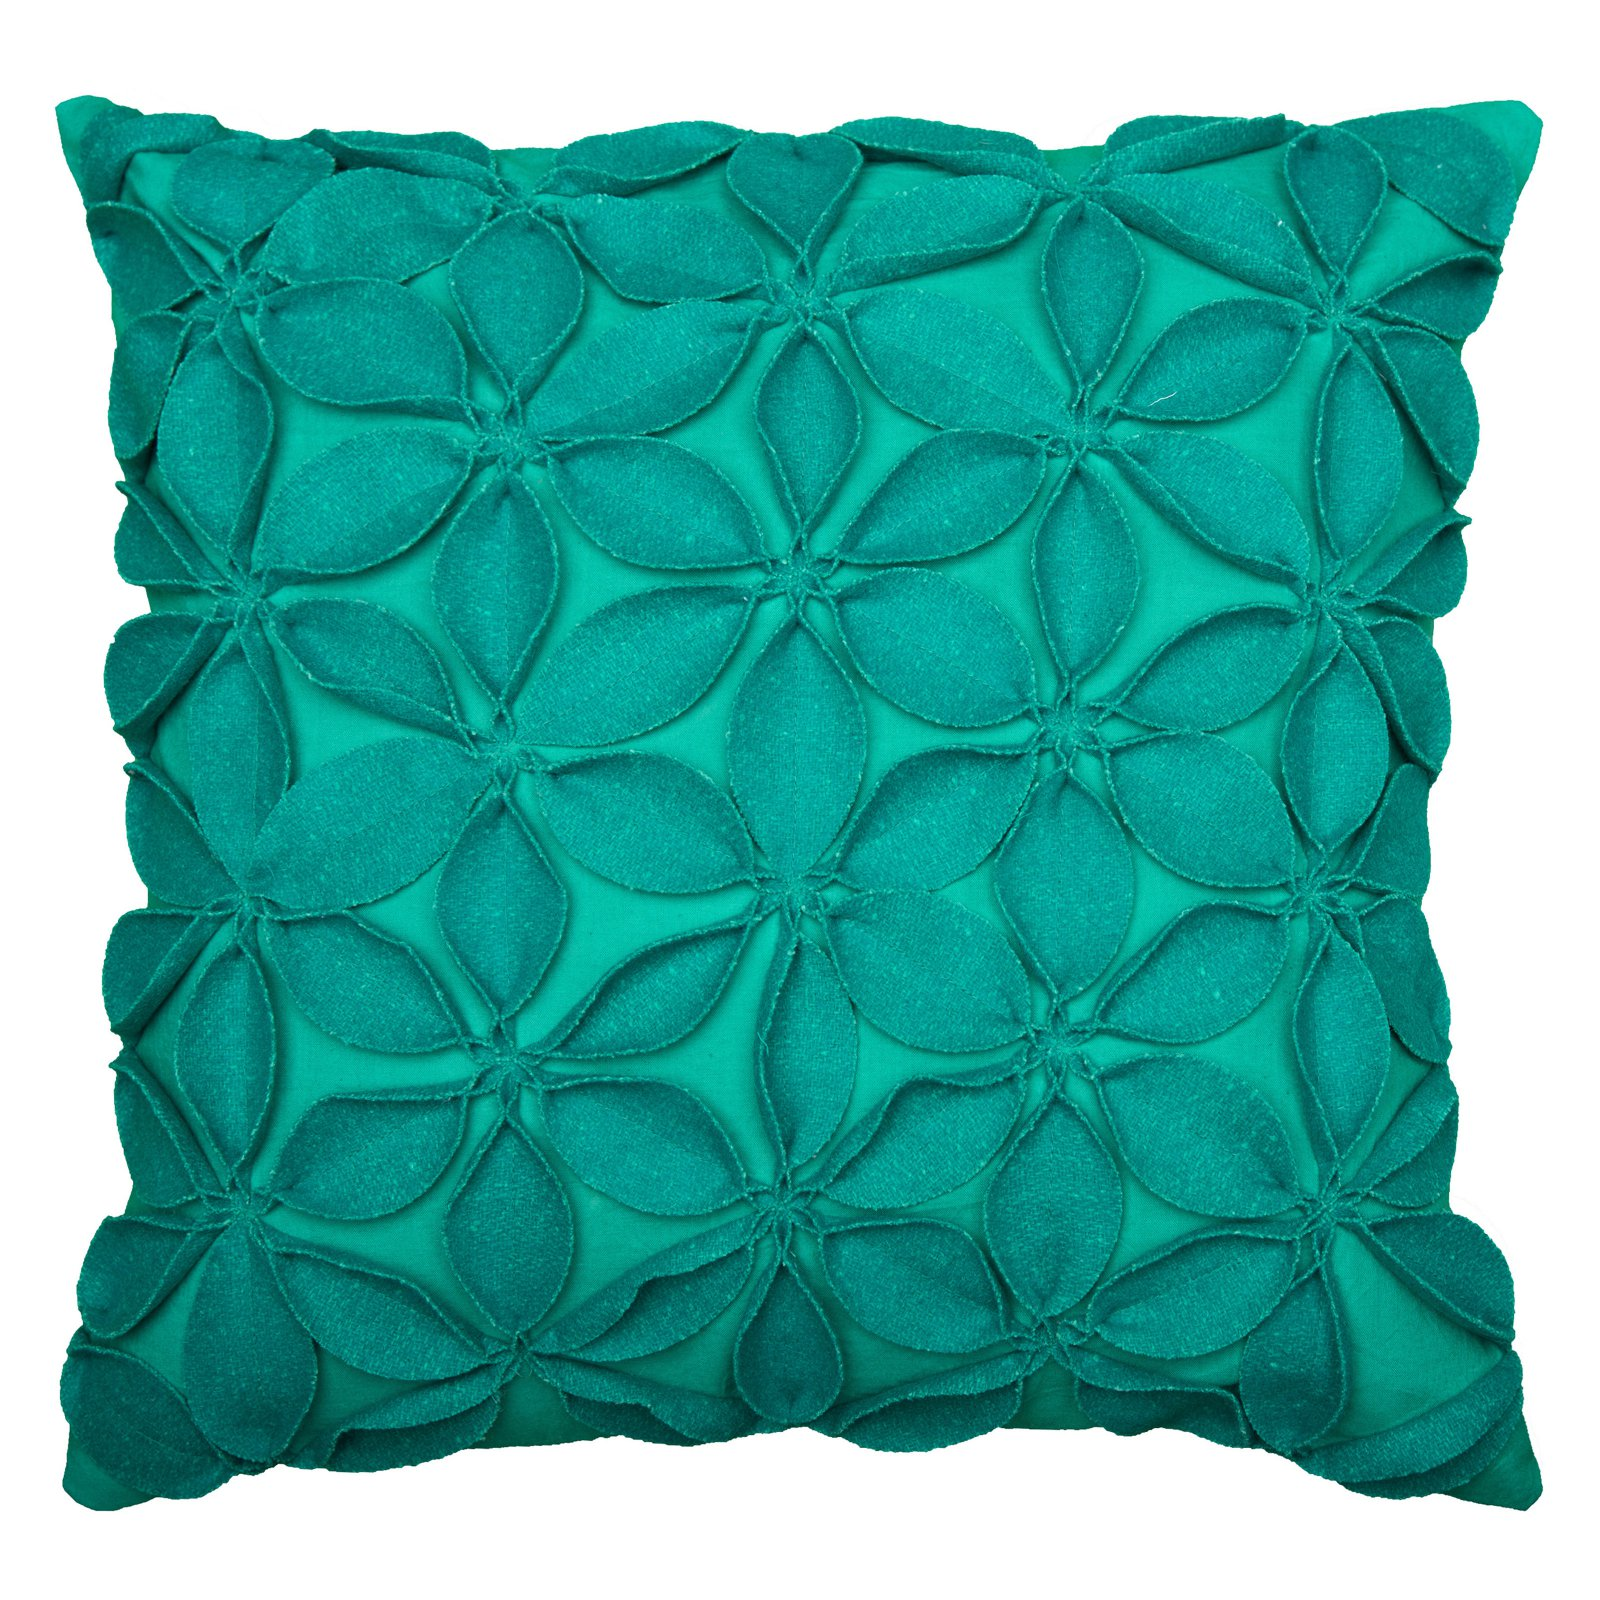 "Rizzy Home Decorative Poly Filled Throw Pillow Solid Botanical Petals 18""X18"" Teal"